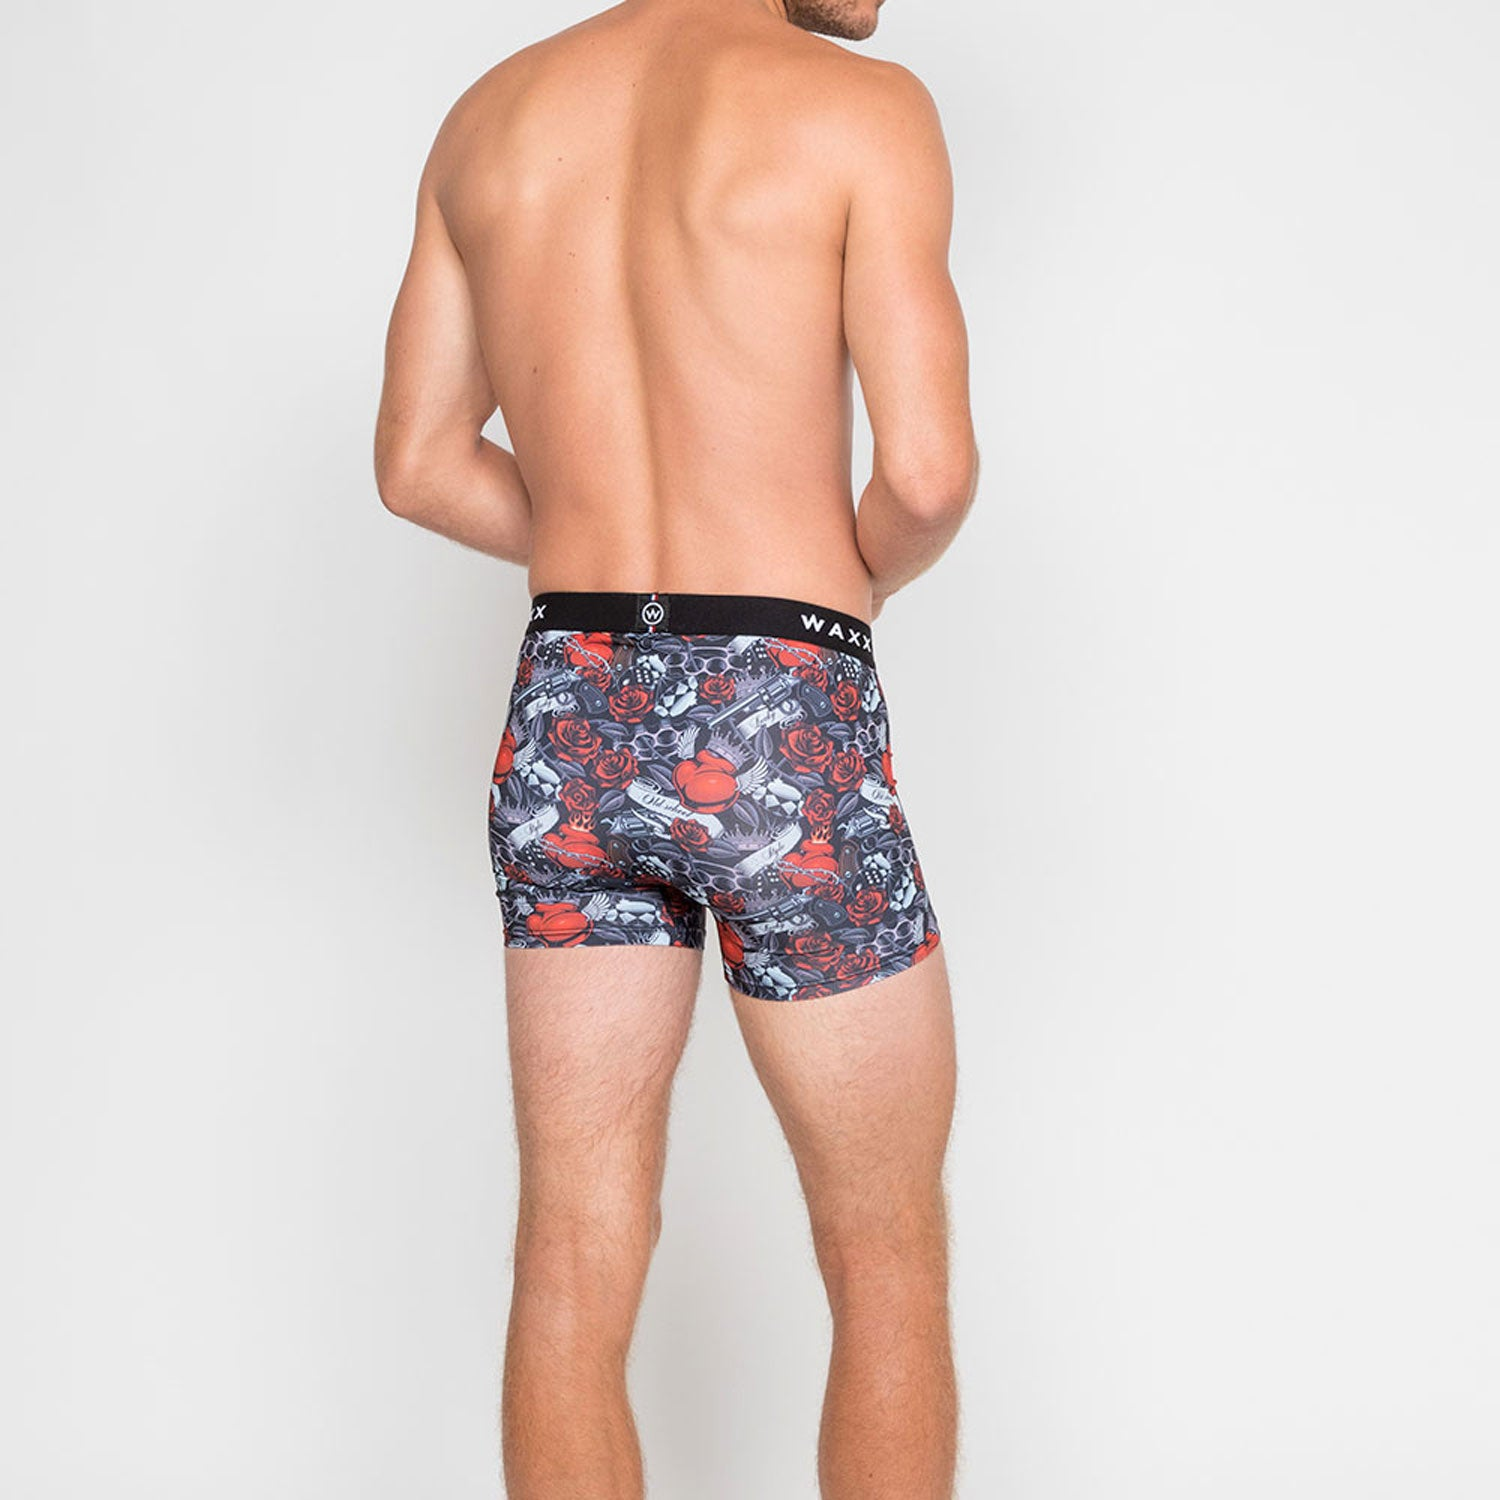 Waxx Men's Trunk Boxer Short Old School